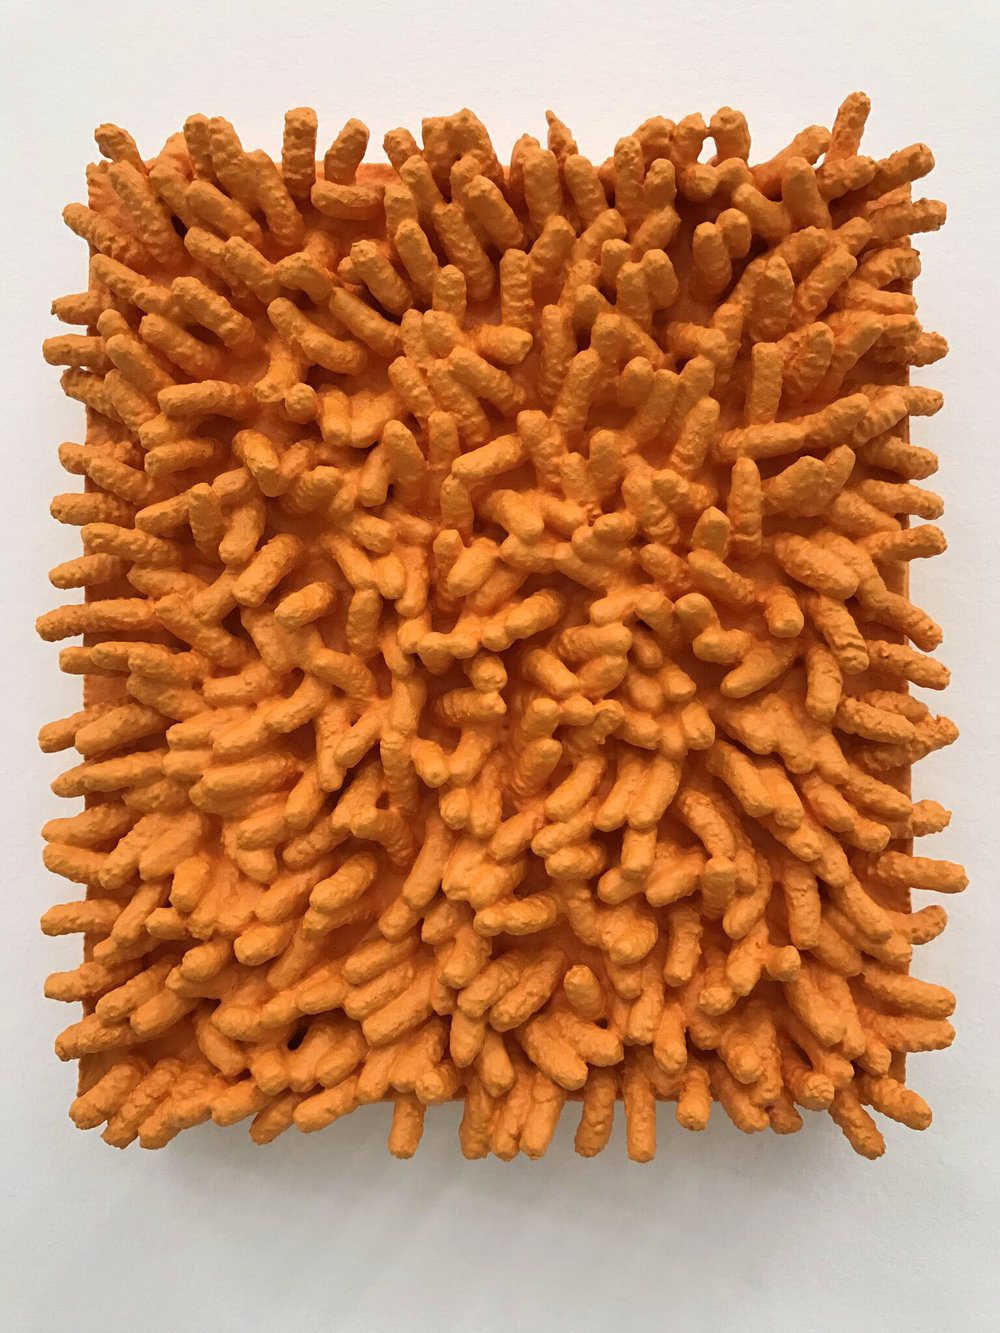 SOFIE RAMOS, outrage, our rage, orange (FTD), 2016. Latex, hand sponge mounted to panel. 5.5 x 4.5 x 4.4 inches.